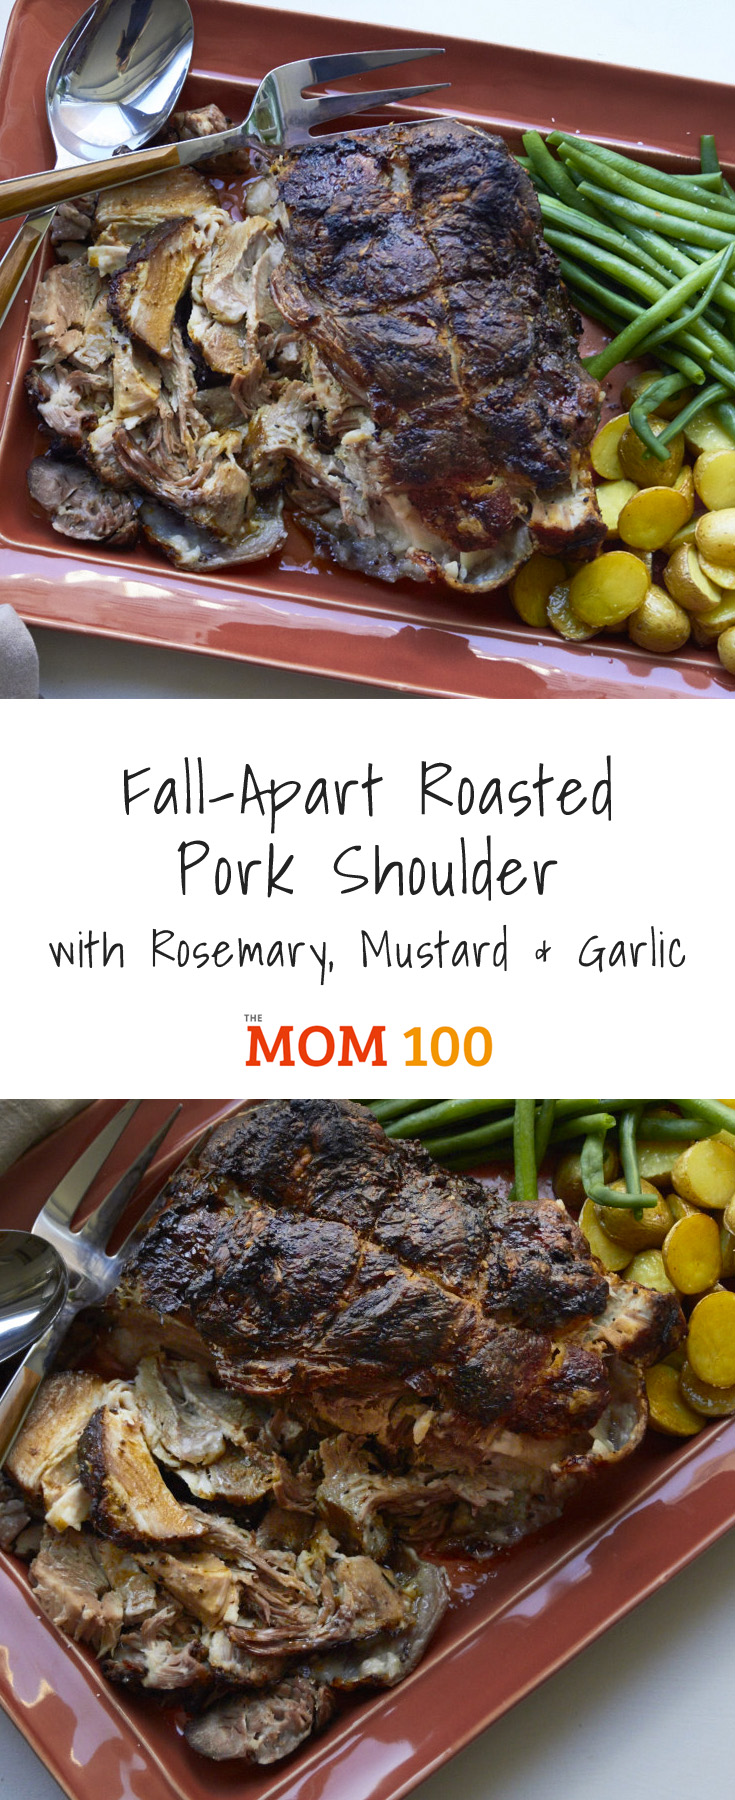 Fall-Apart Roasted Pork Shoulder with Rosemary, Mustard and Garlic